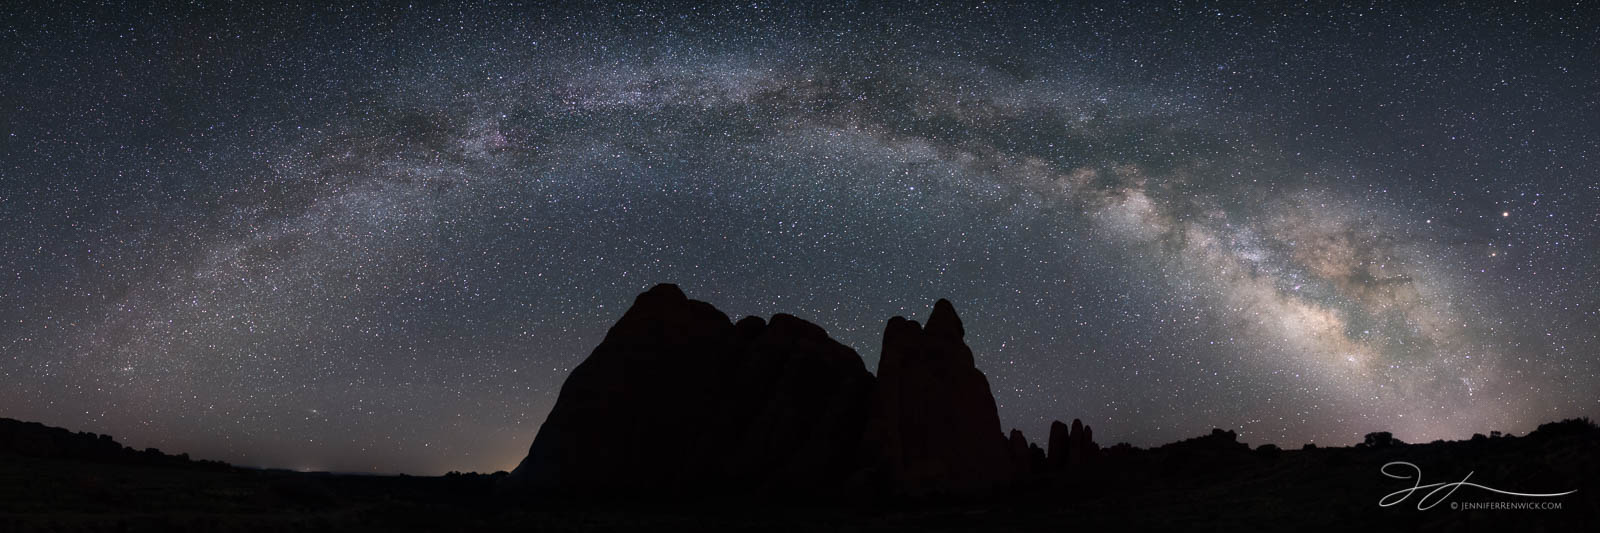 Arches national park, Utah, astrophotography, summer, desert, night photography, sandstone, stars, Milky Way Panorama, arc of the Milky Way, The Fins, photo